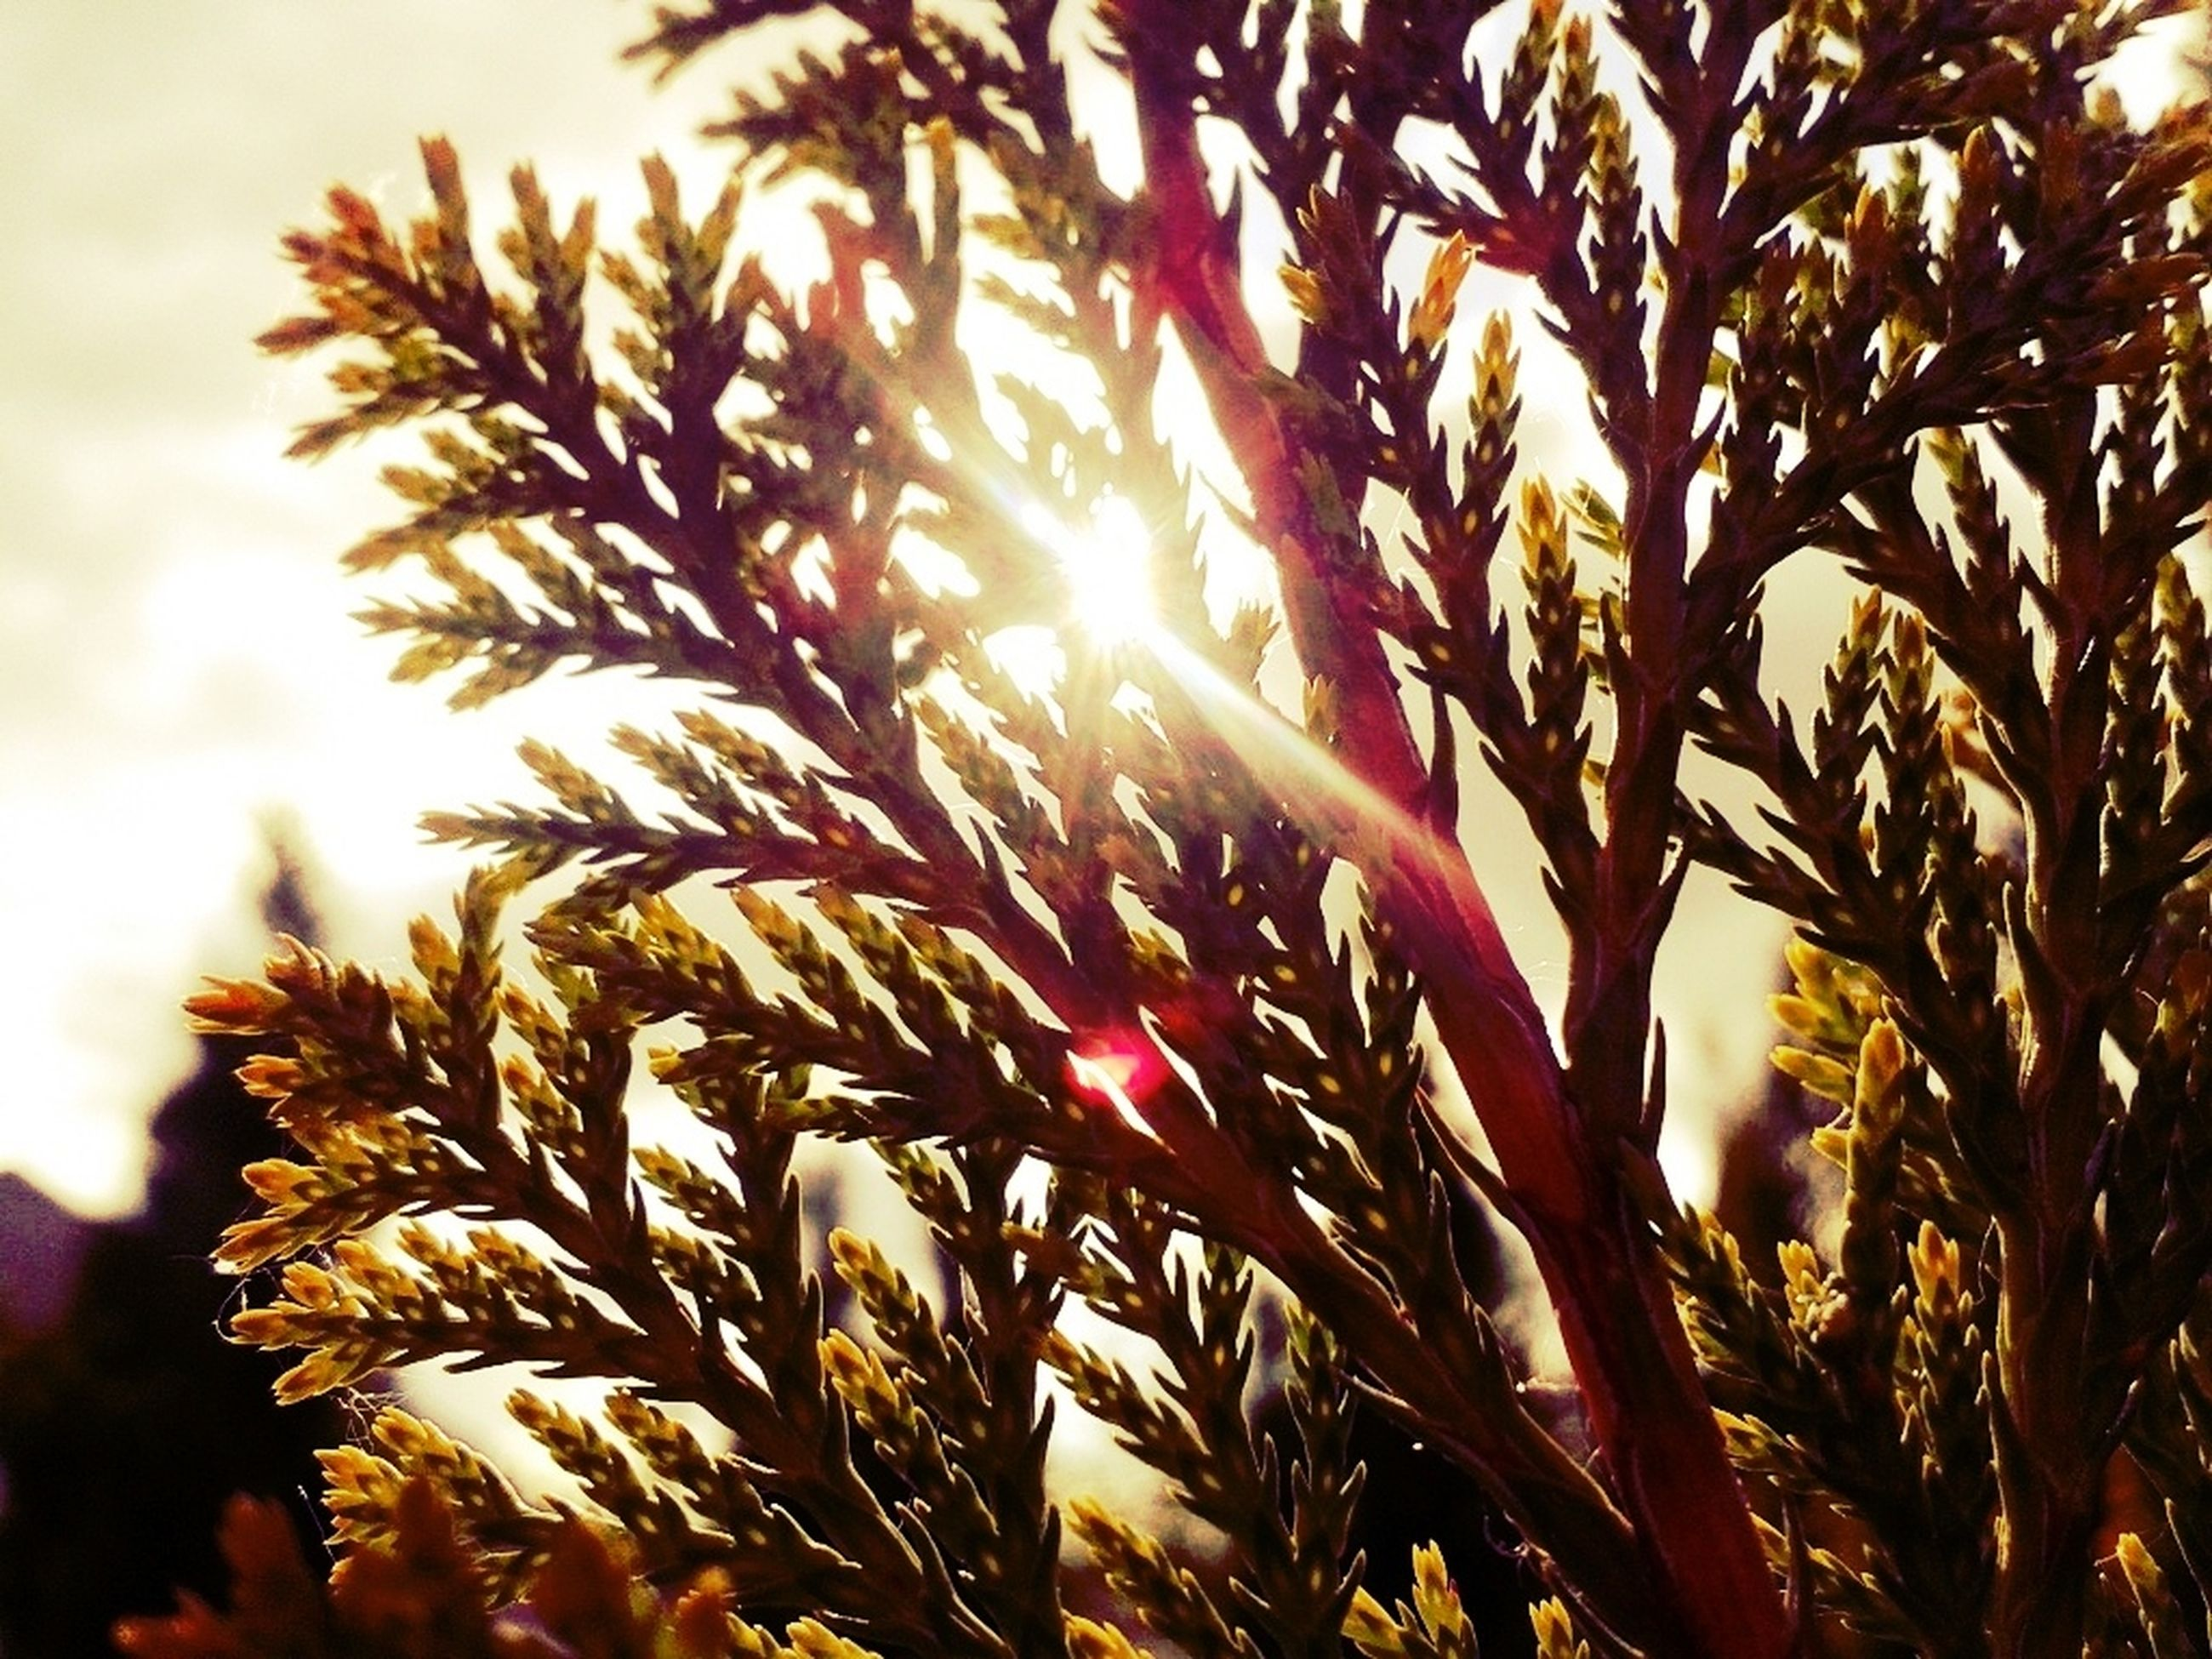 growth, low angle view, leaf, nature, tree, sun, beauty in nature, sunlight, branch, sky, palm tree, tranquility, plant, outdoors, close-up, sunset, lens flare, no people, day, silhouette